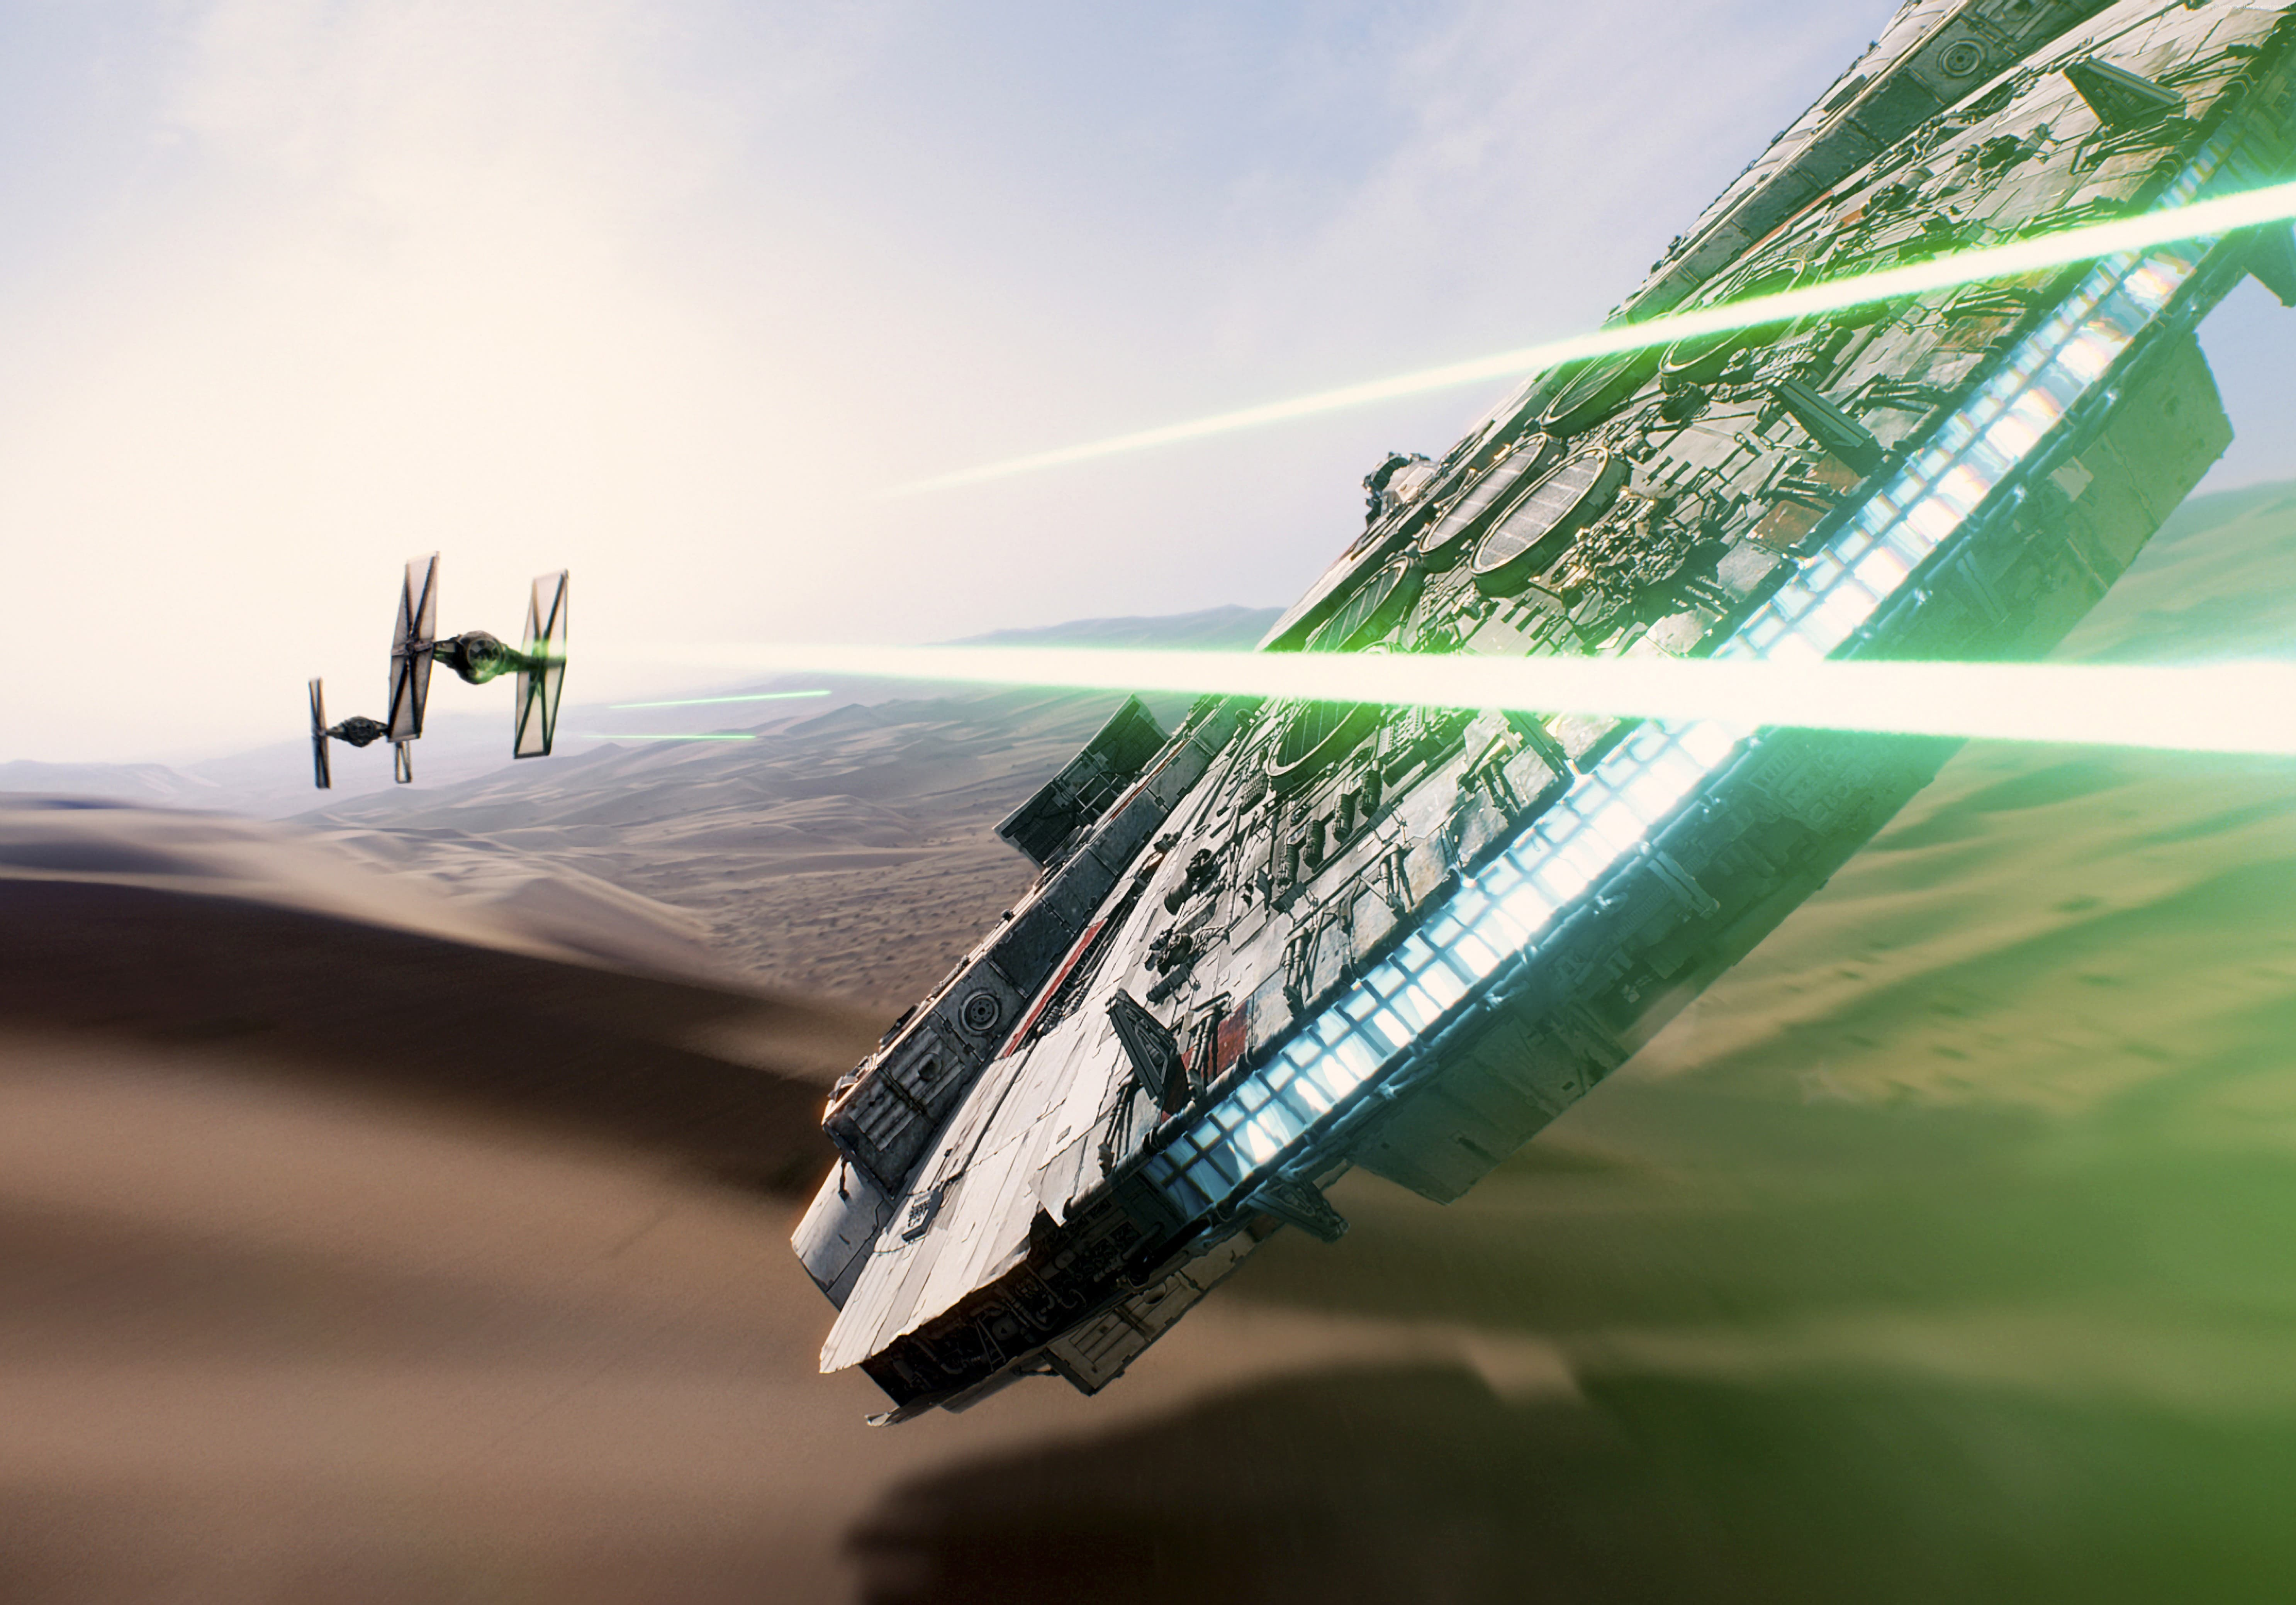 Star Wars Episode VII: The Force Awakens Full hd wallpapers